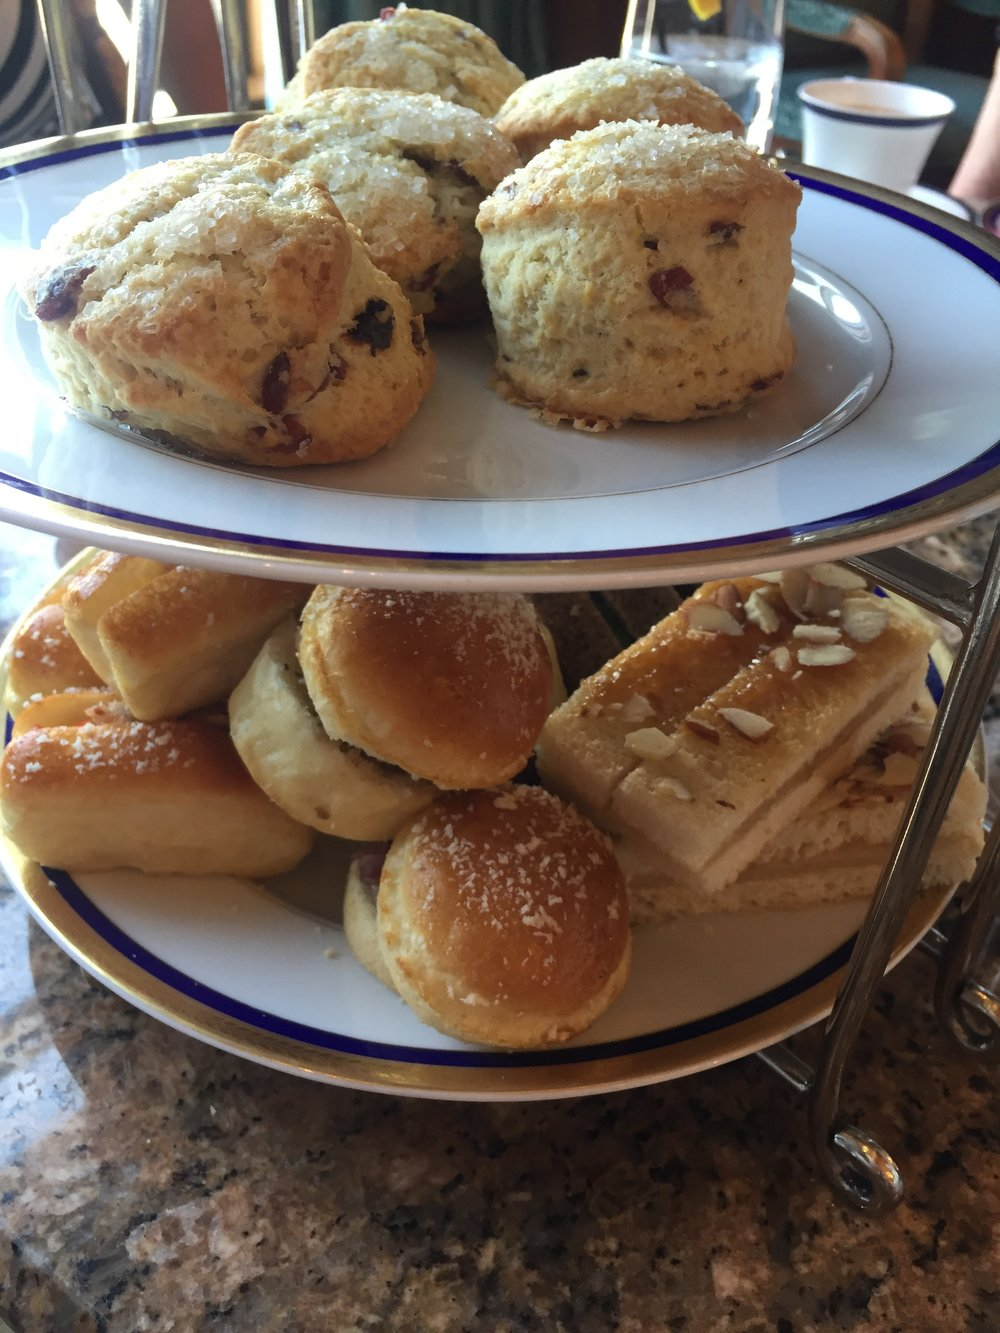 The Grand America Hotel Afternoon Tea Sandwiches and Scones (photo cred. Cassidy Demkov)